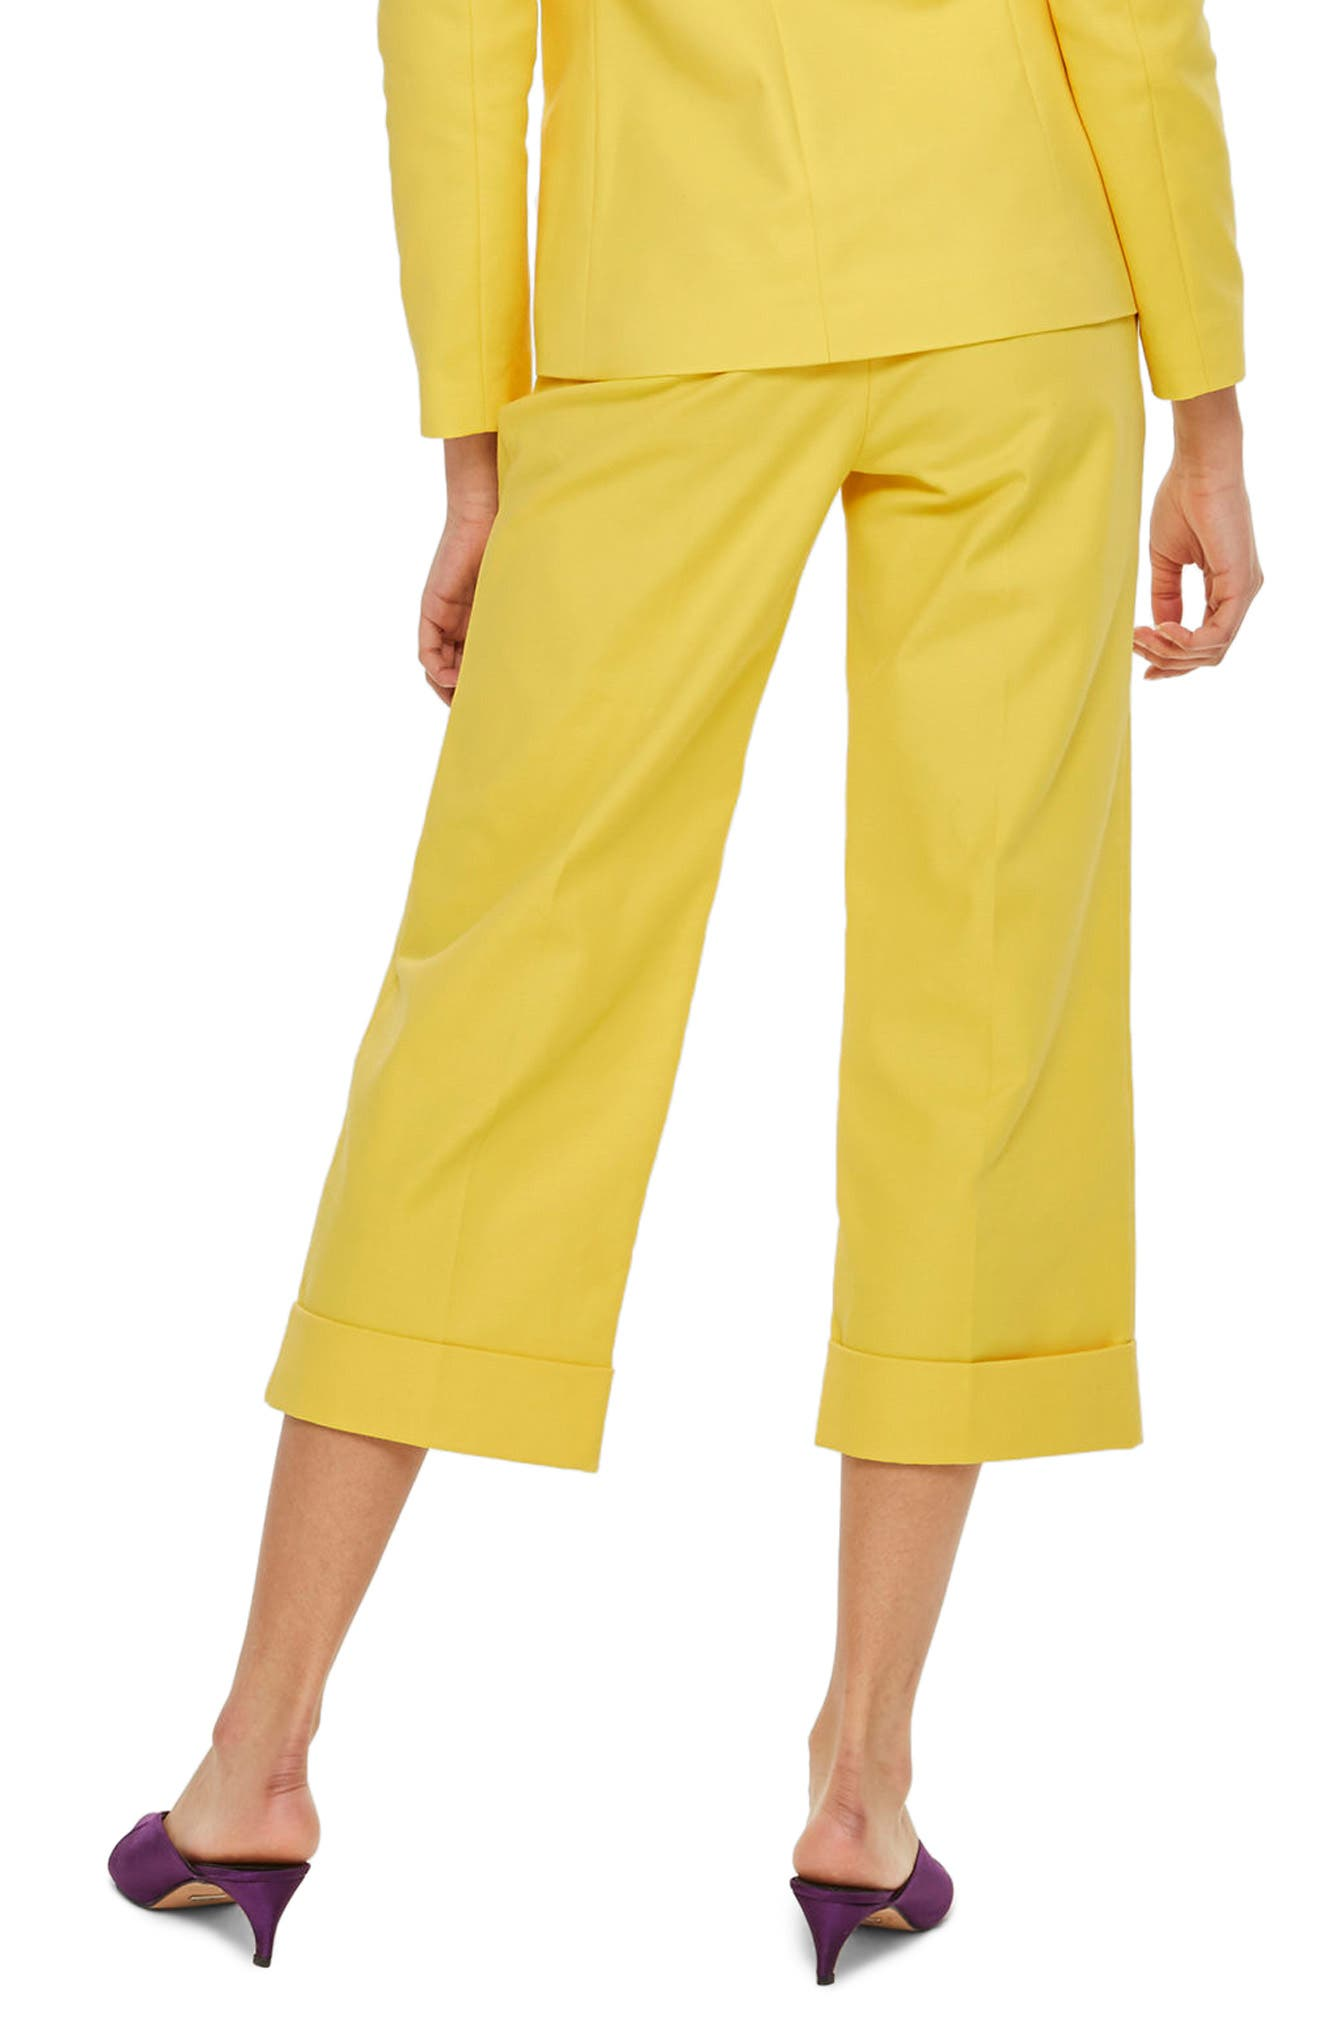 Milly Crop Suit Trousers,                             Alternate thumbnail 2, color,                             700